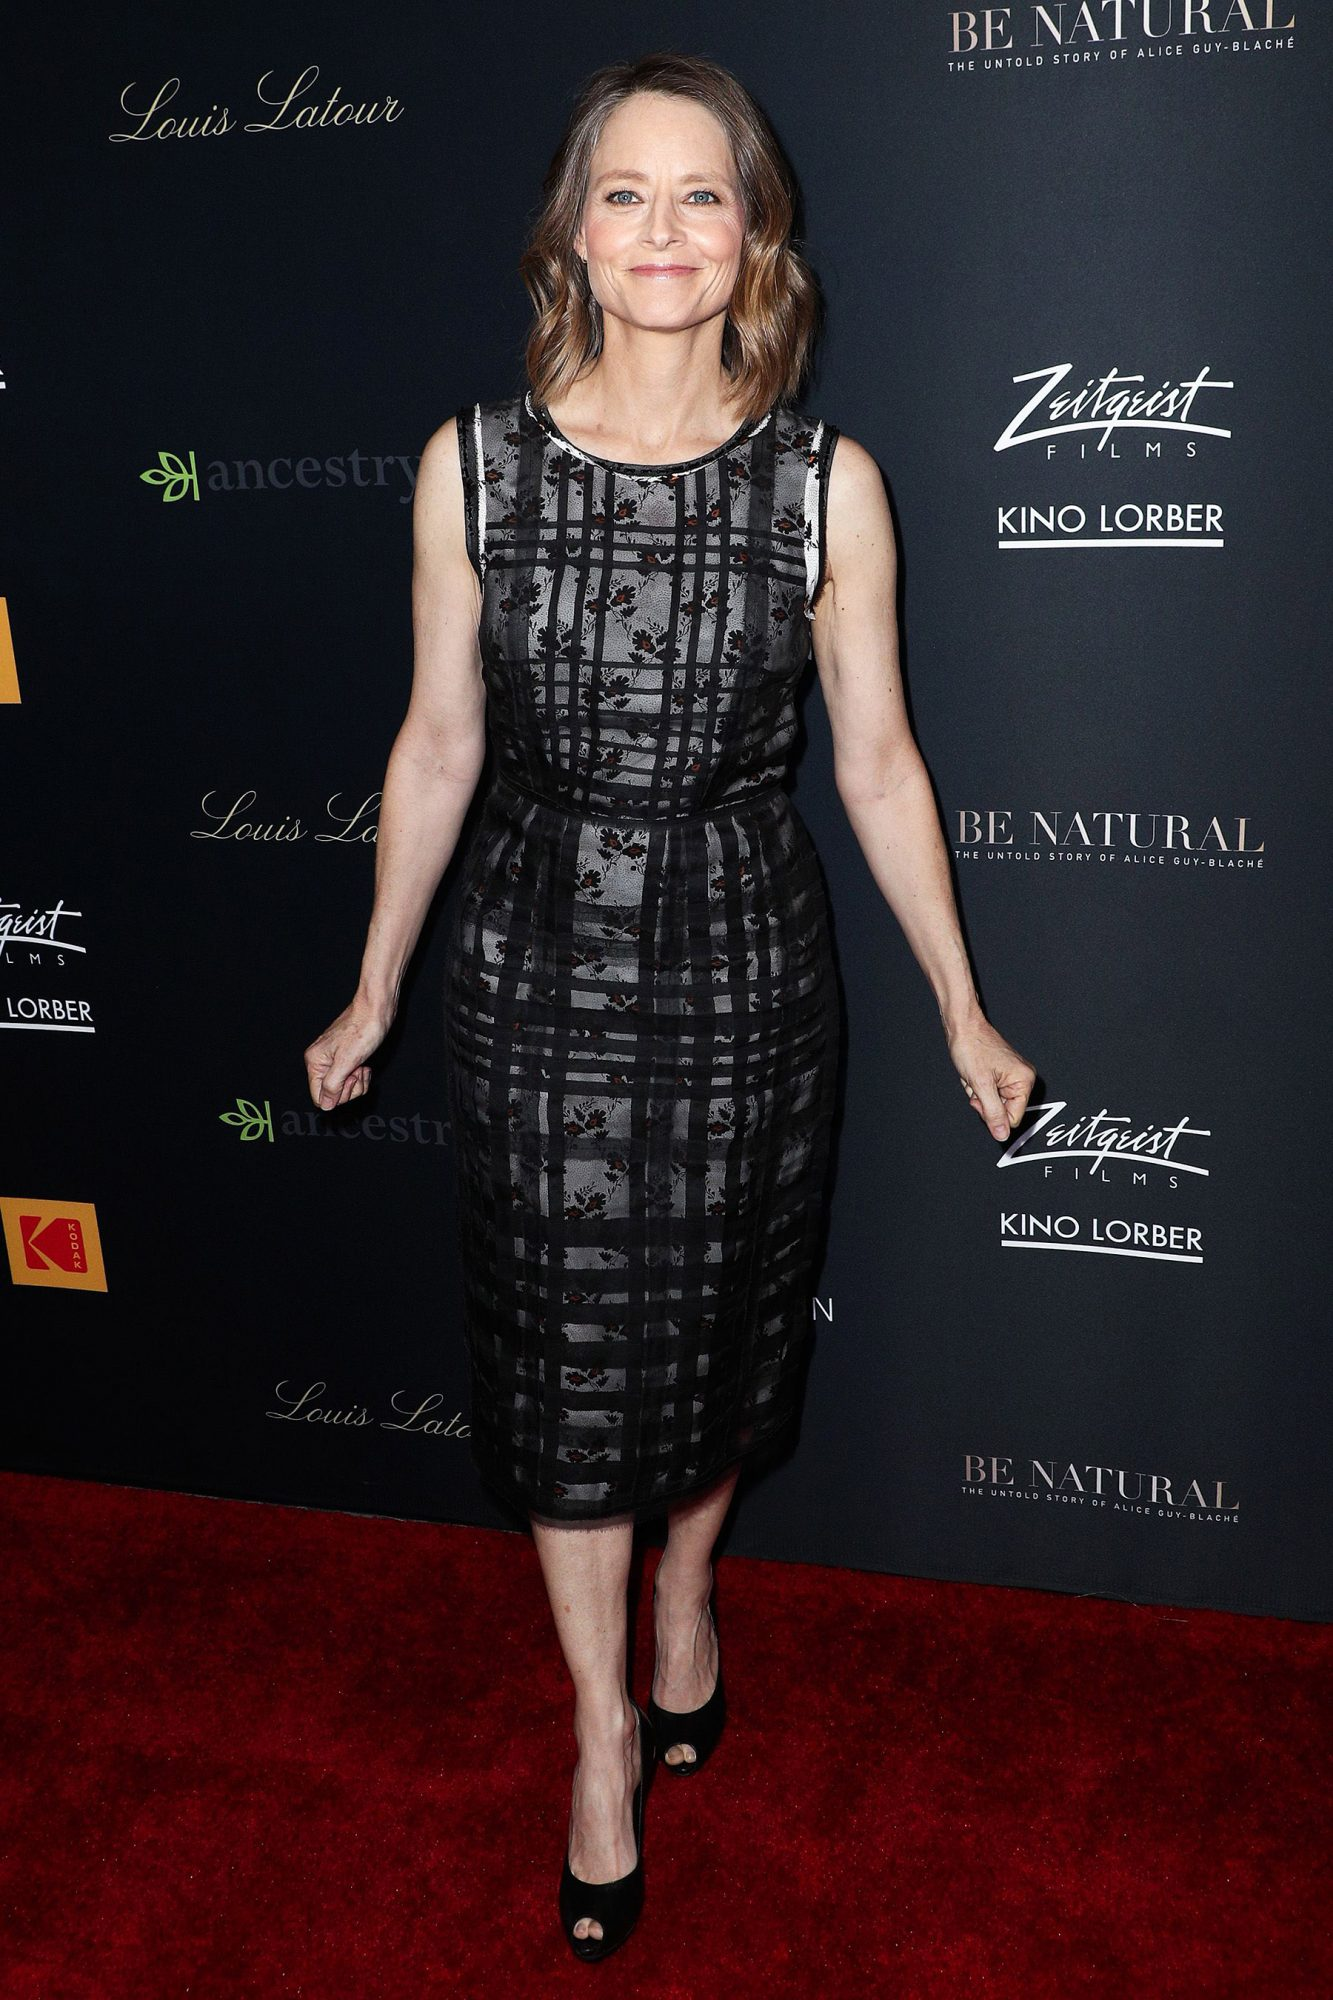 'Be Natural: The Untold Story of Alice Guy-Blache' Film Premiere, Arrivals, Harmony Gold, Los Angeles, USA - 09 Apr 2019